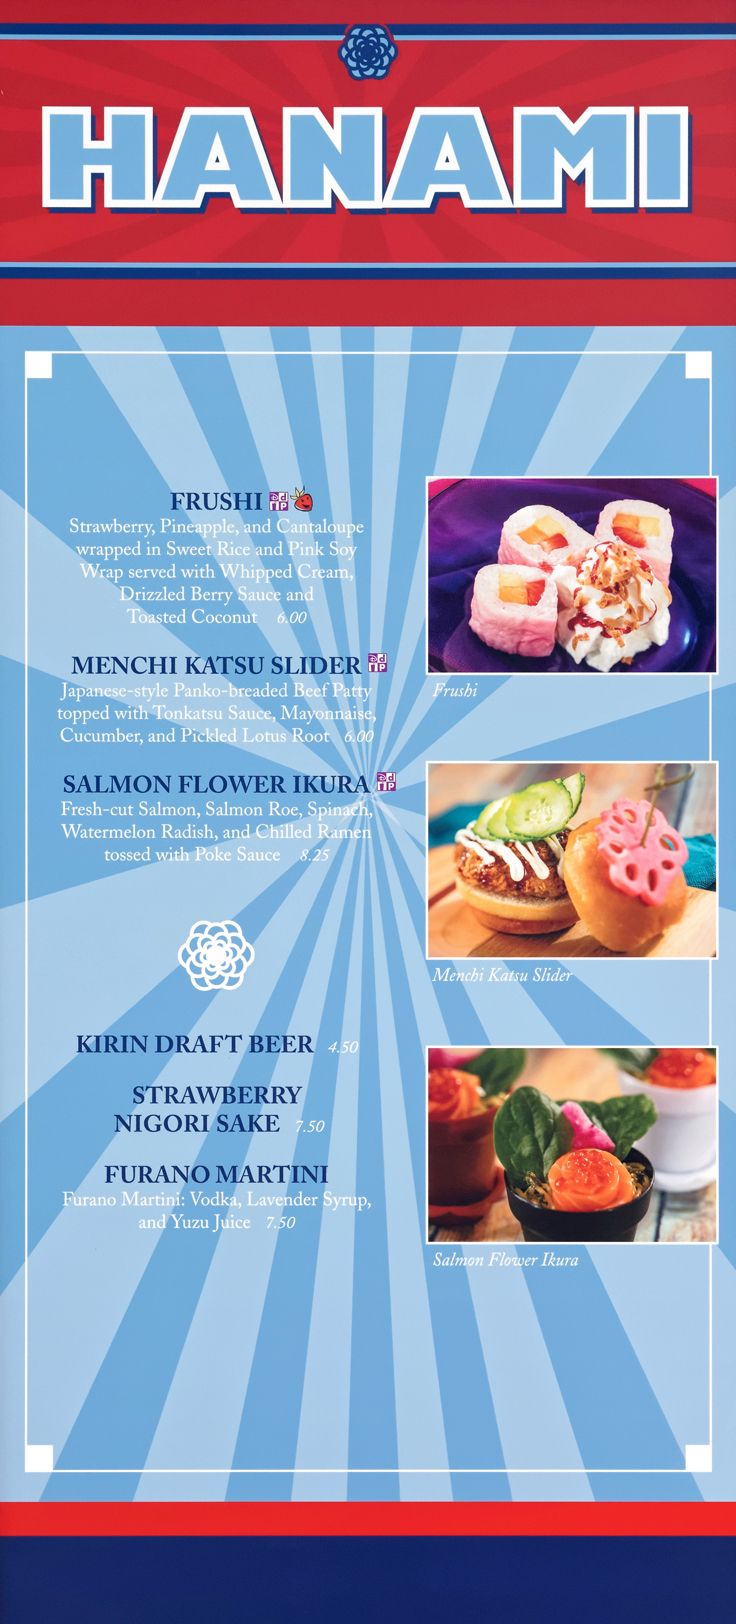 Hanami Japan Menu With Food Photos Prices For 2020 In 2020 Watermelon Radish Flower Garden Festival